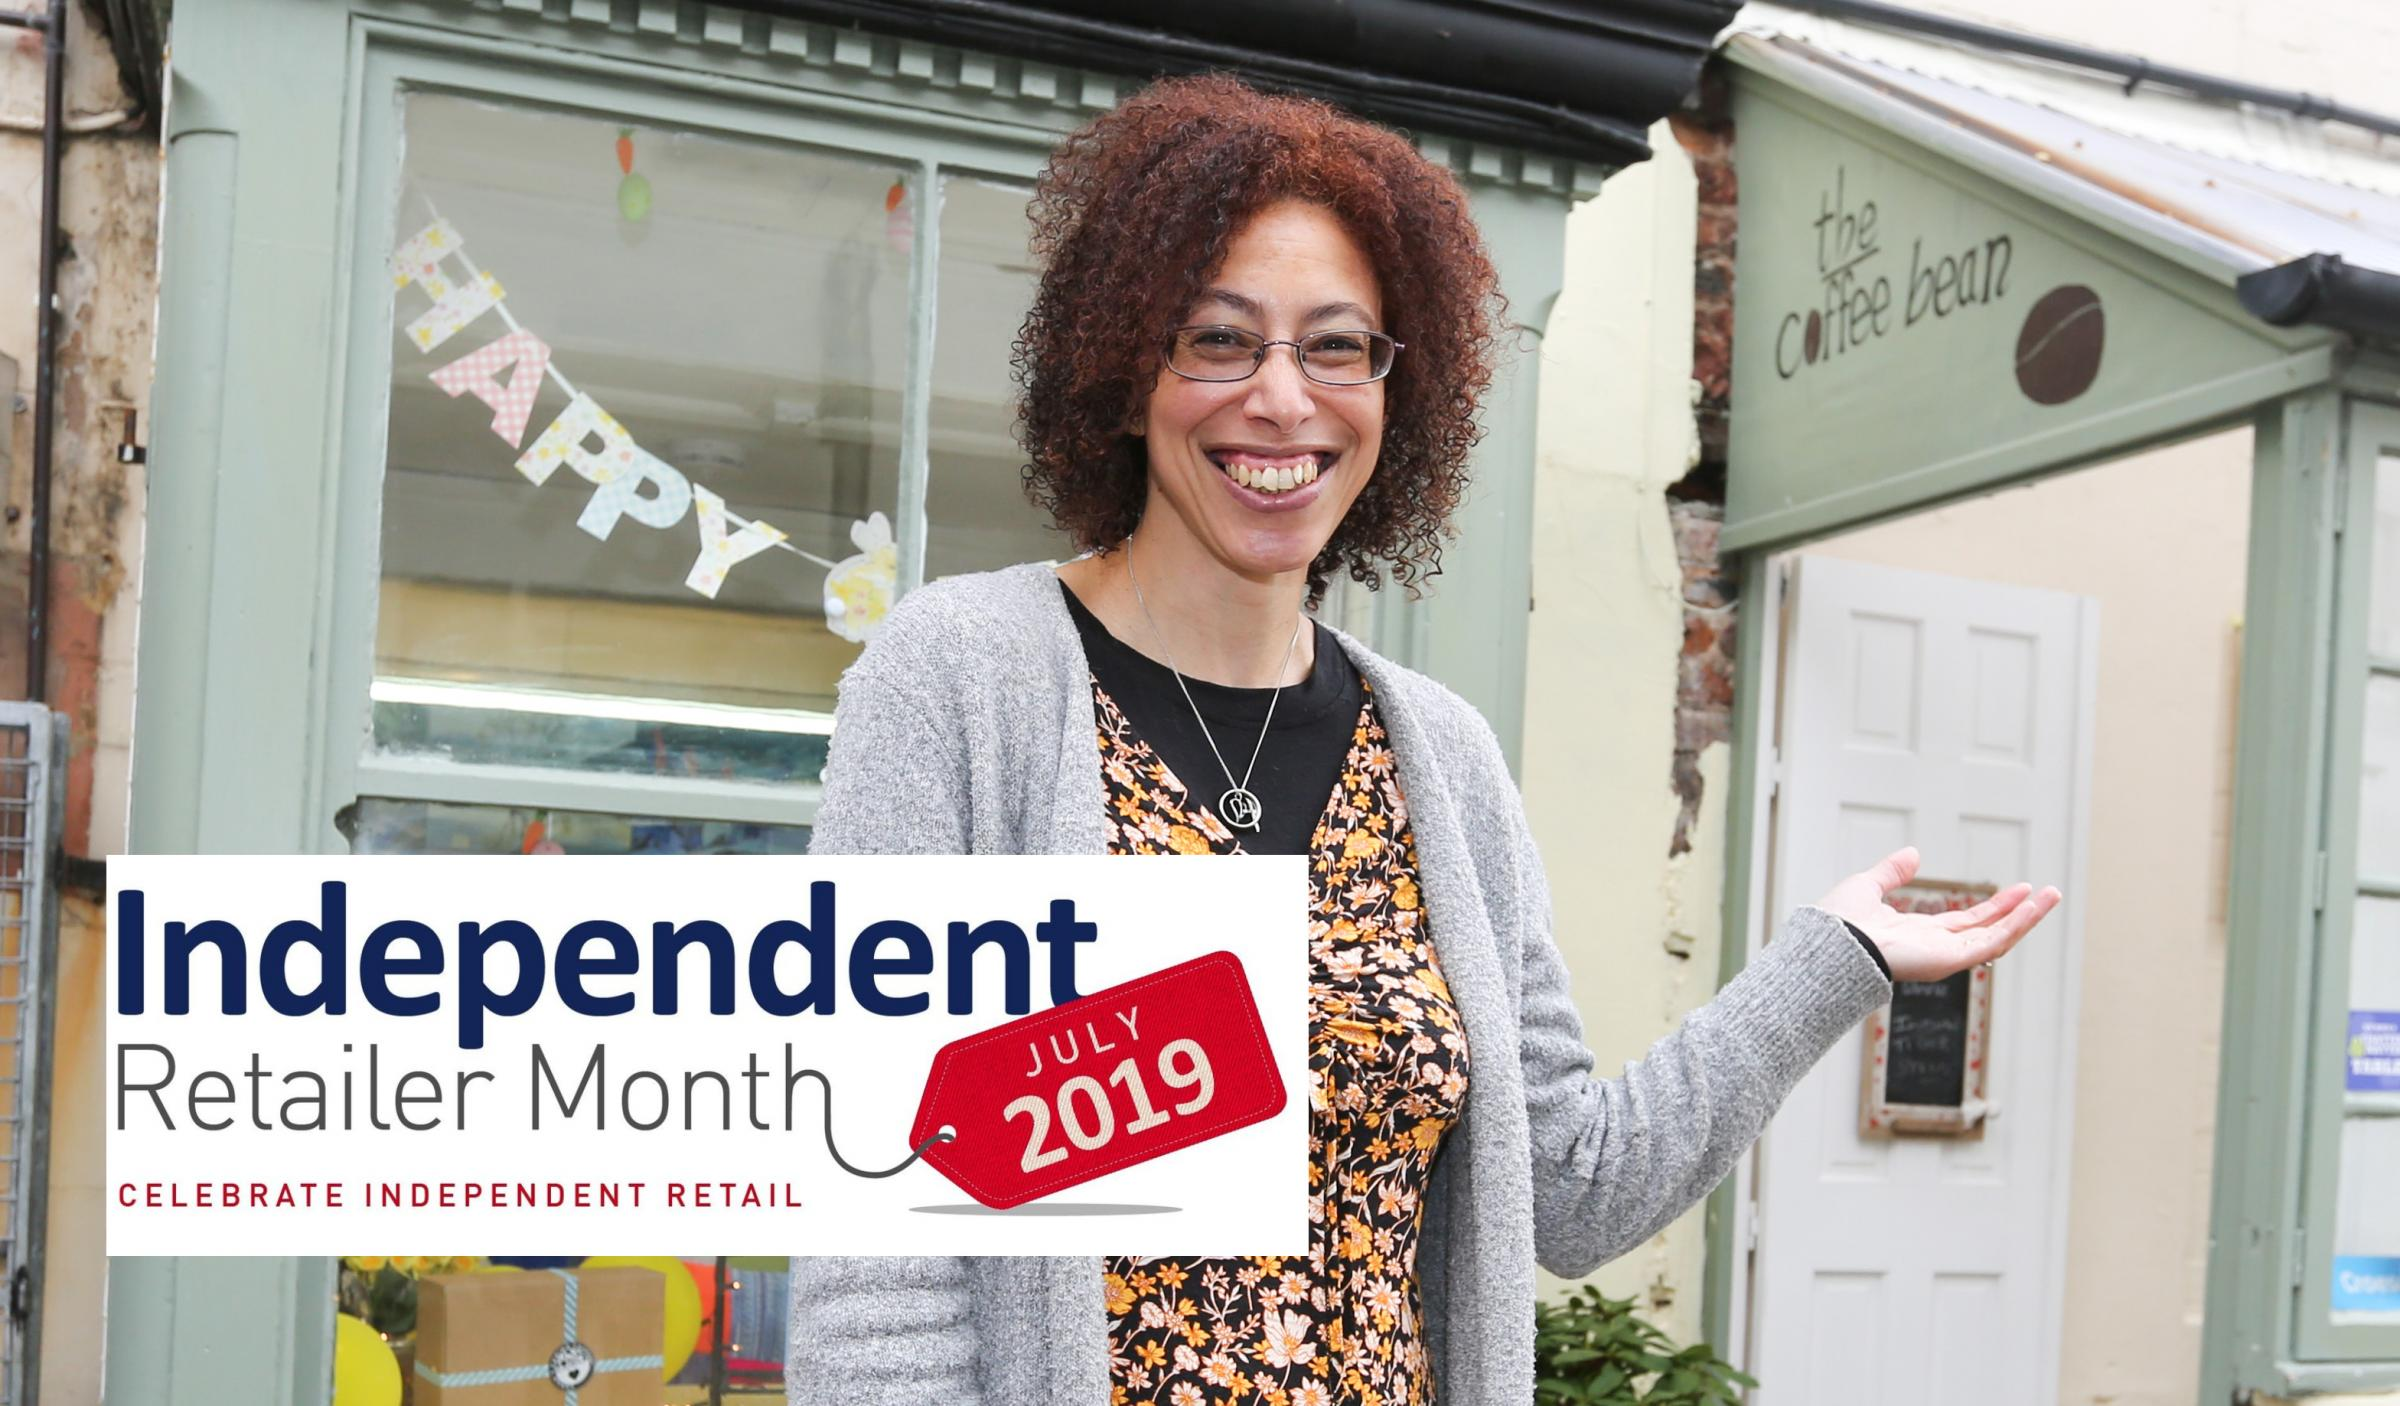 Independent Retailer Month: Q&A with owner of The Coffee Bean in Holywell